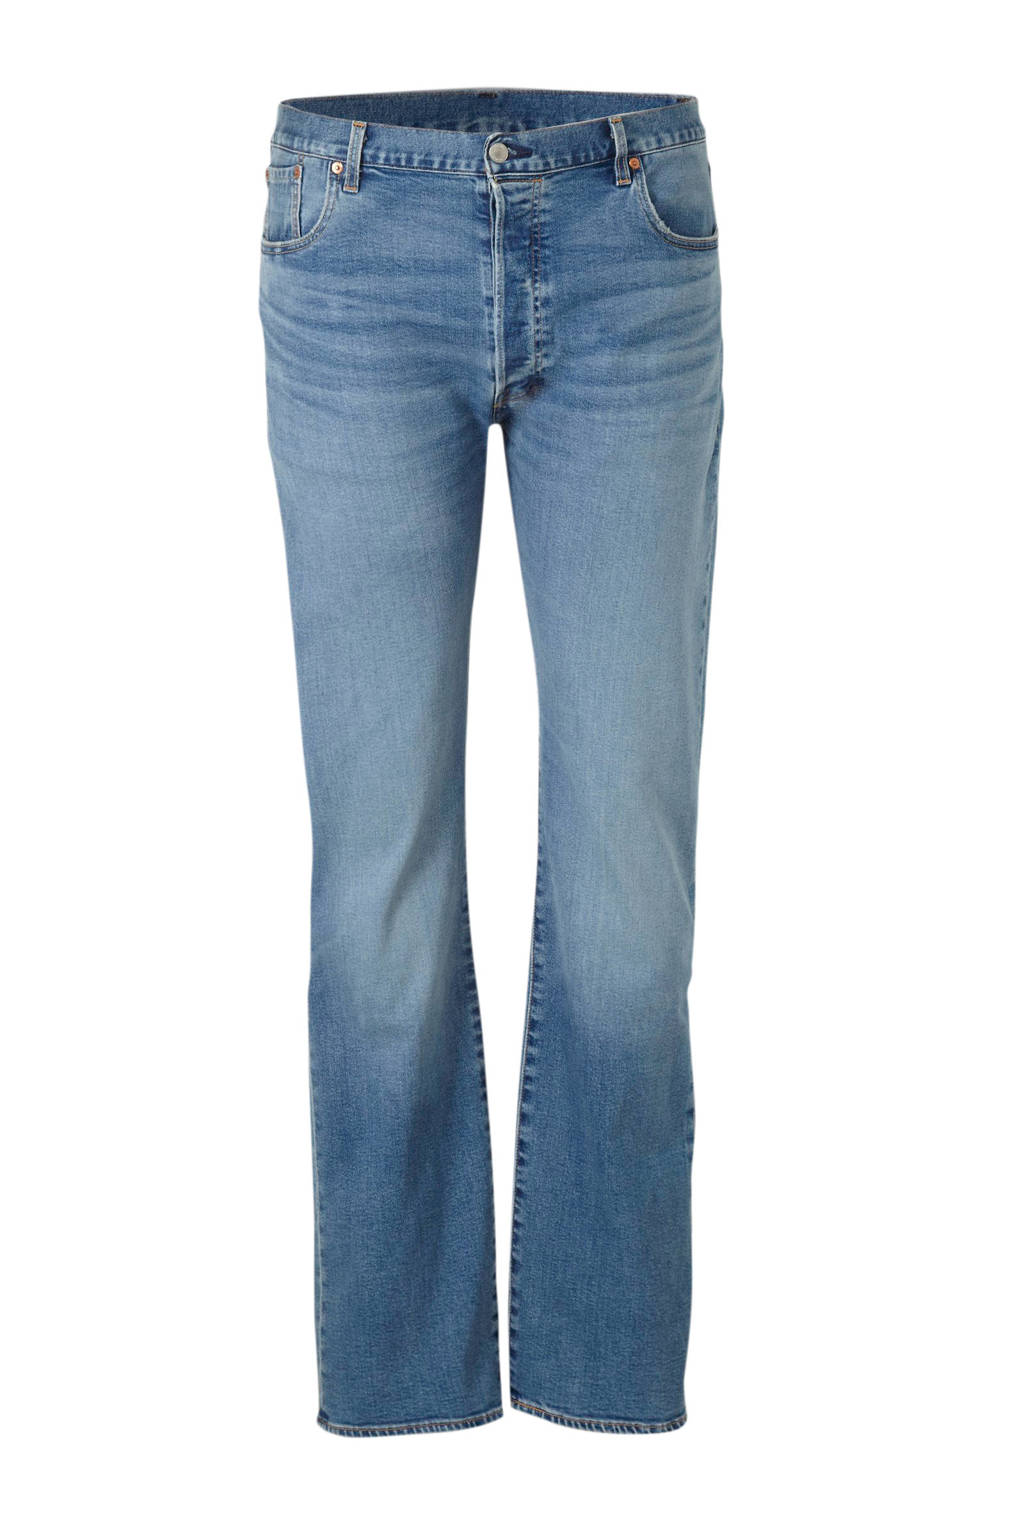 Levi's Big and Tall straight fit jeans 501, IRONWOOD OVERT